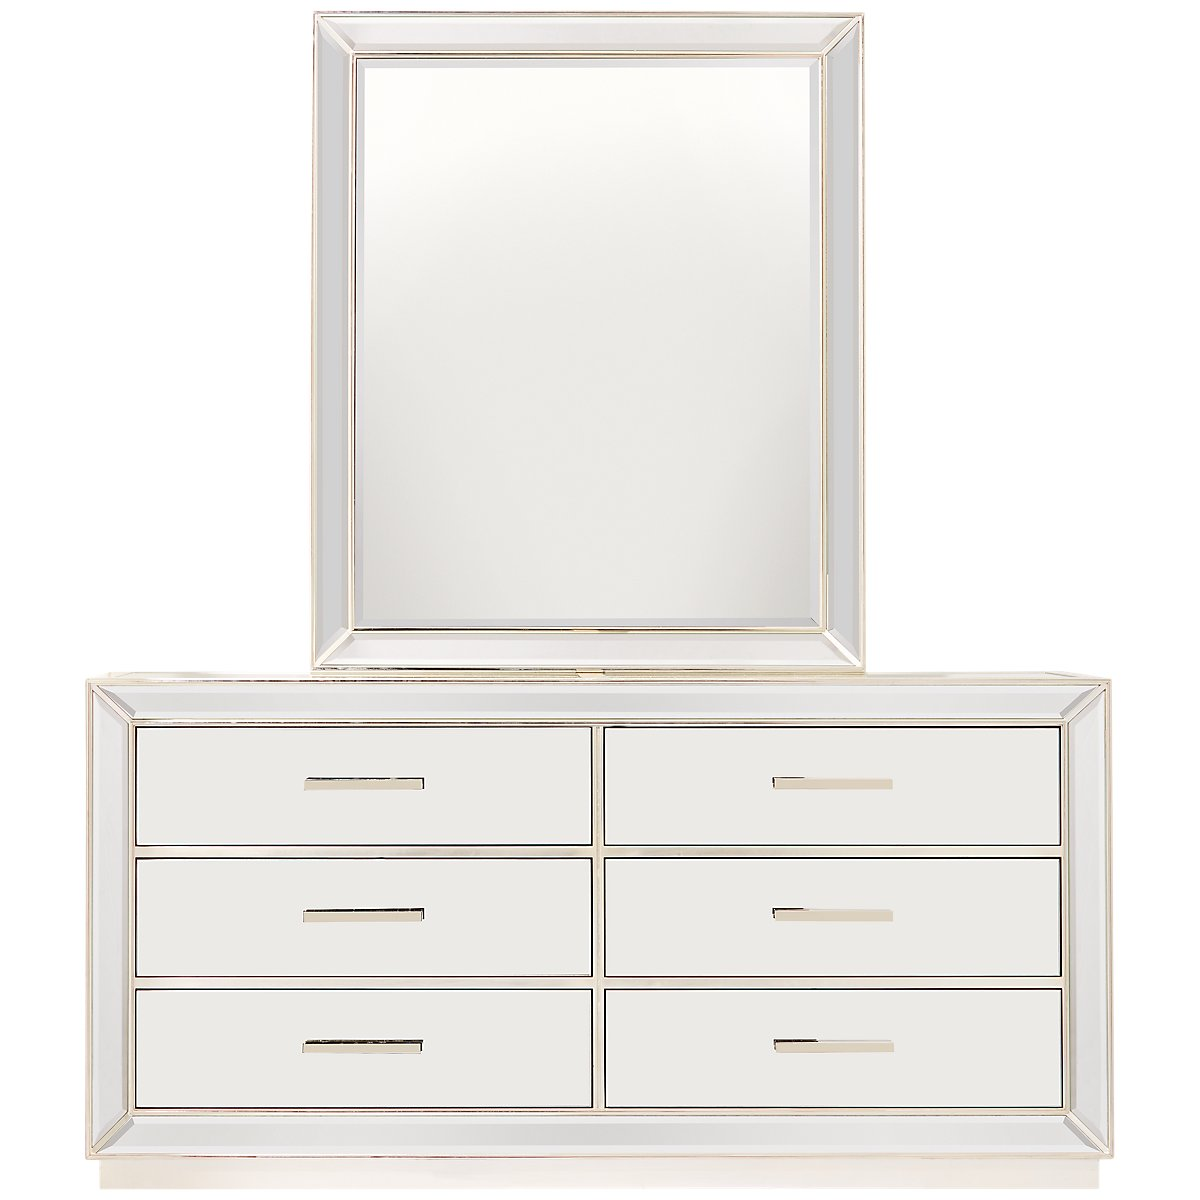 seat black design r mirrored bed rug wool chest mirror bla nightstand modern wooden s and wall dresser comes l round furniture table leather brown source m white cheap with rectangle drawers f ideas